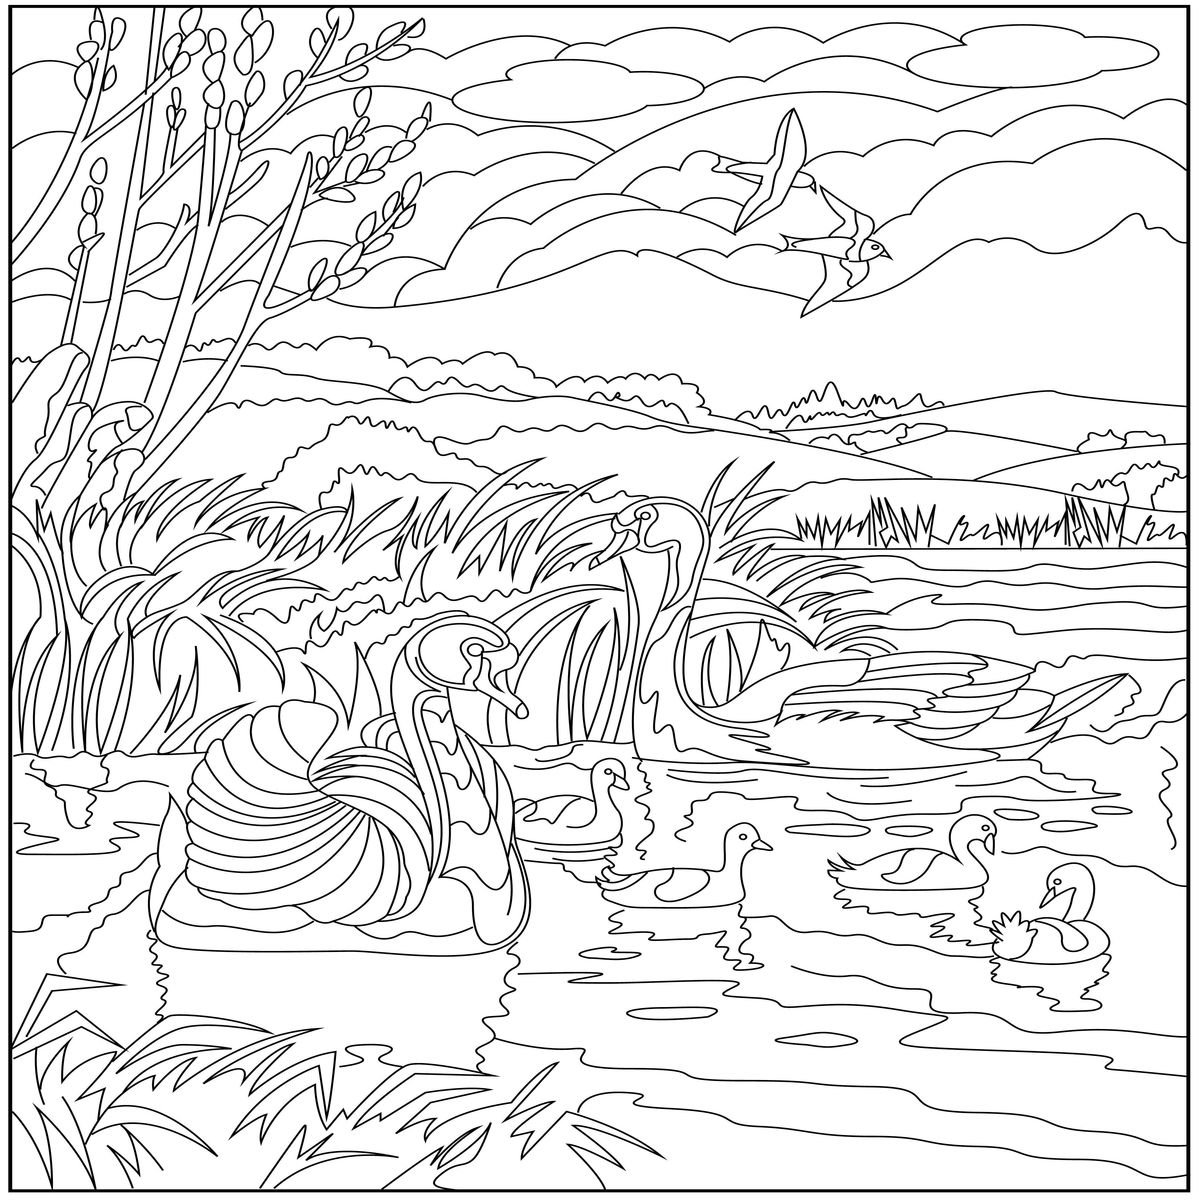 calming coloring pages for adults printable | Free Adult Coloring Pages | Creatively Calm Studios